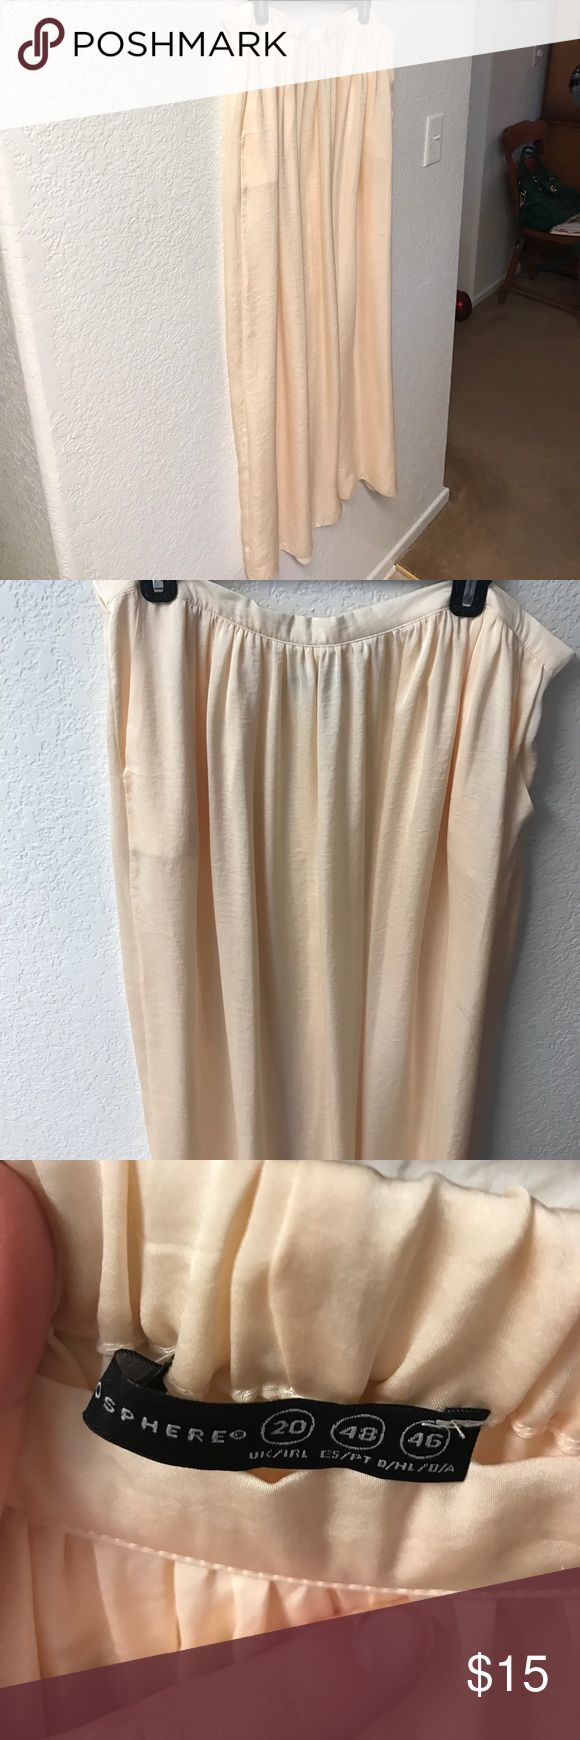 Beige Maxi Skirt Beige silk - like maxi skirt. The beige is more of a cream color. Never worn. Part of the waist is elastic. There are pockets. It is a size 16 in the USA. Primark is a U.K. brand. Primark Skirts Maxi